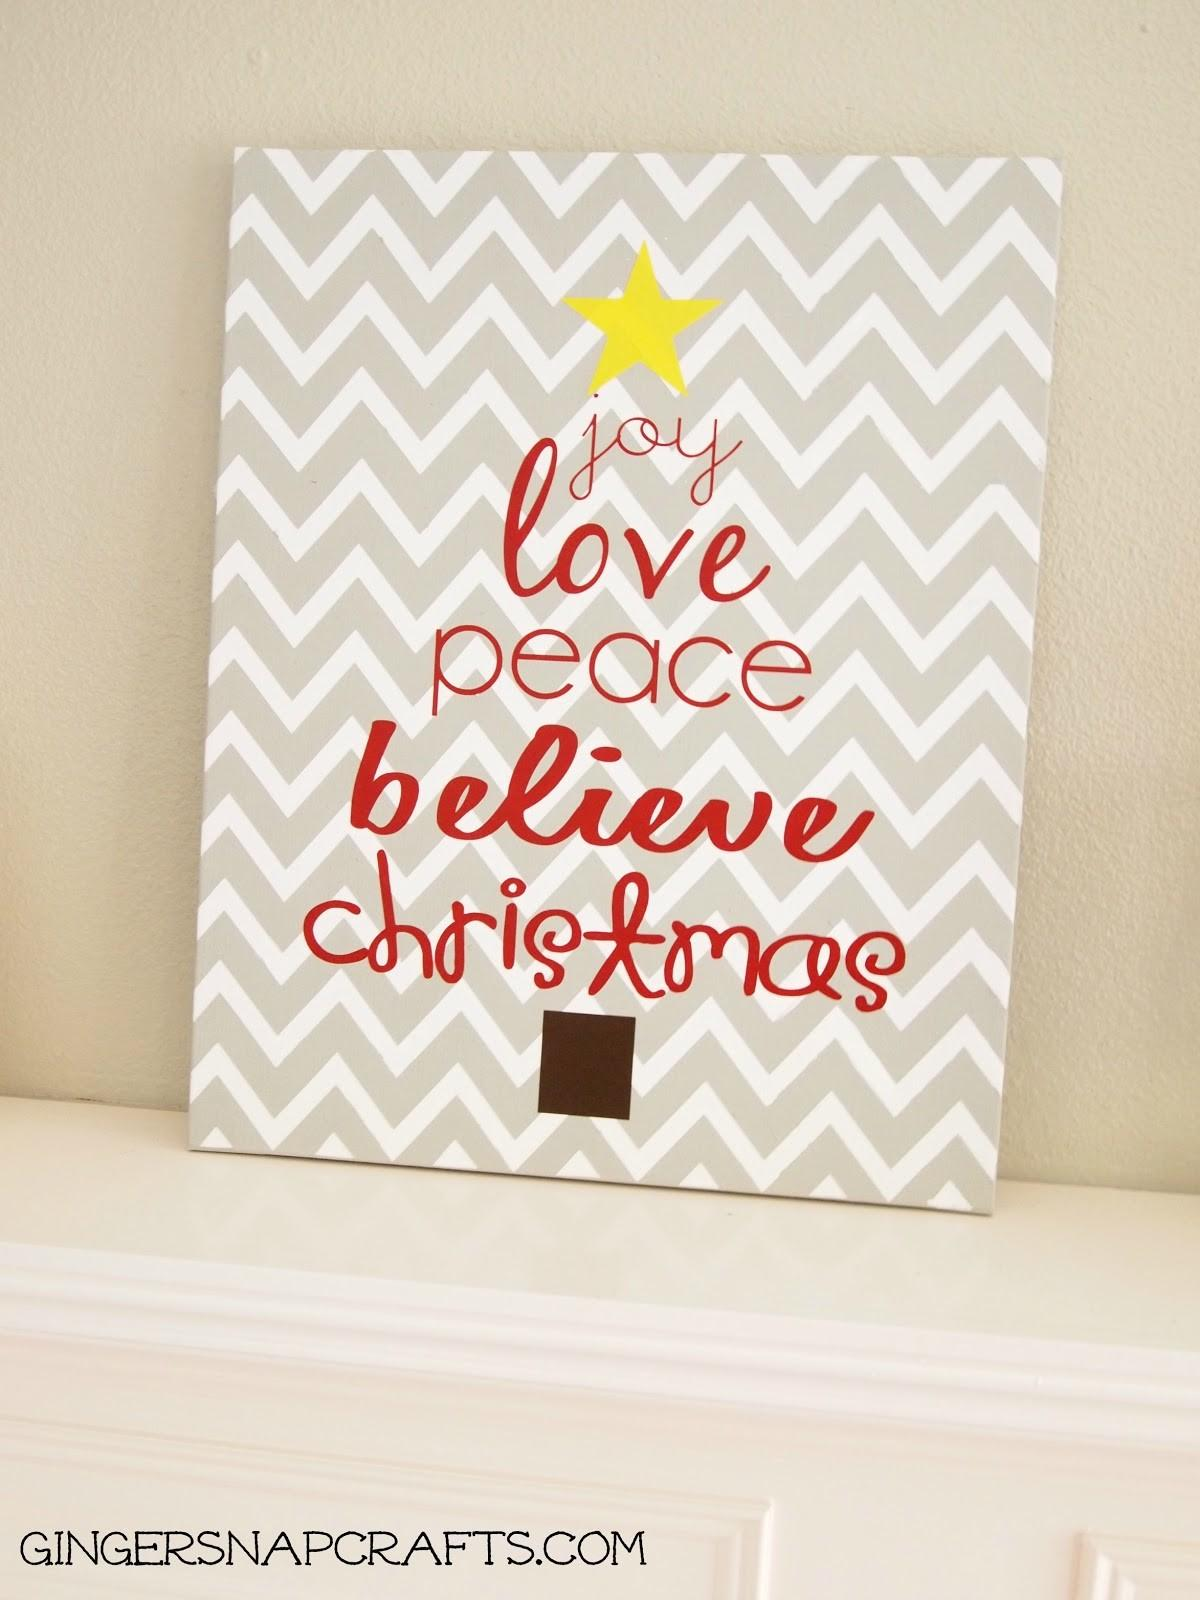 Ginger Snap Crafts Easy Knock Christmas Art Tutorial